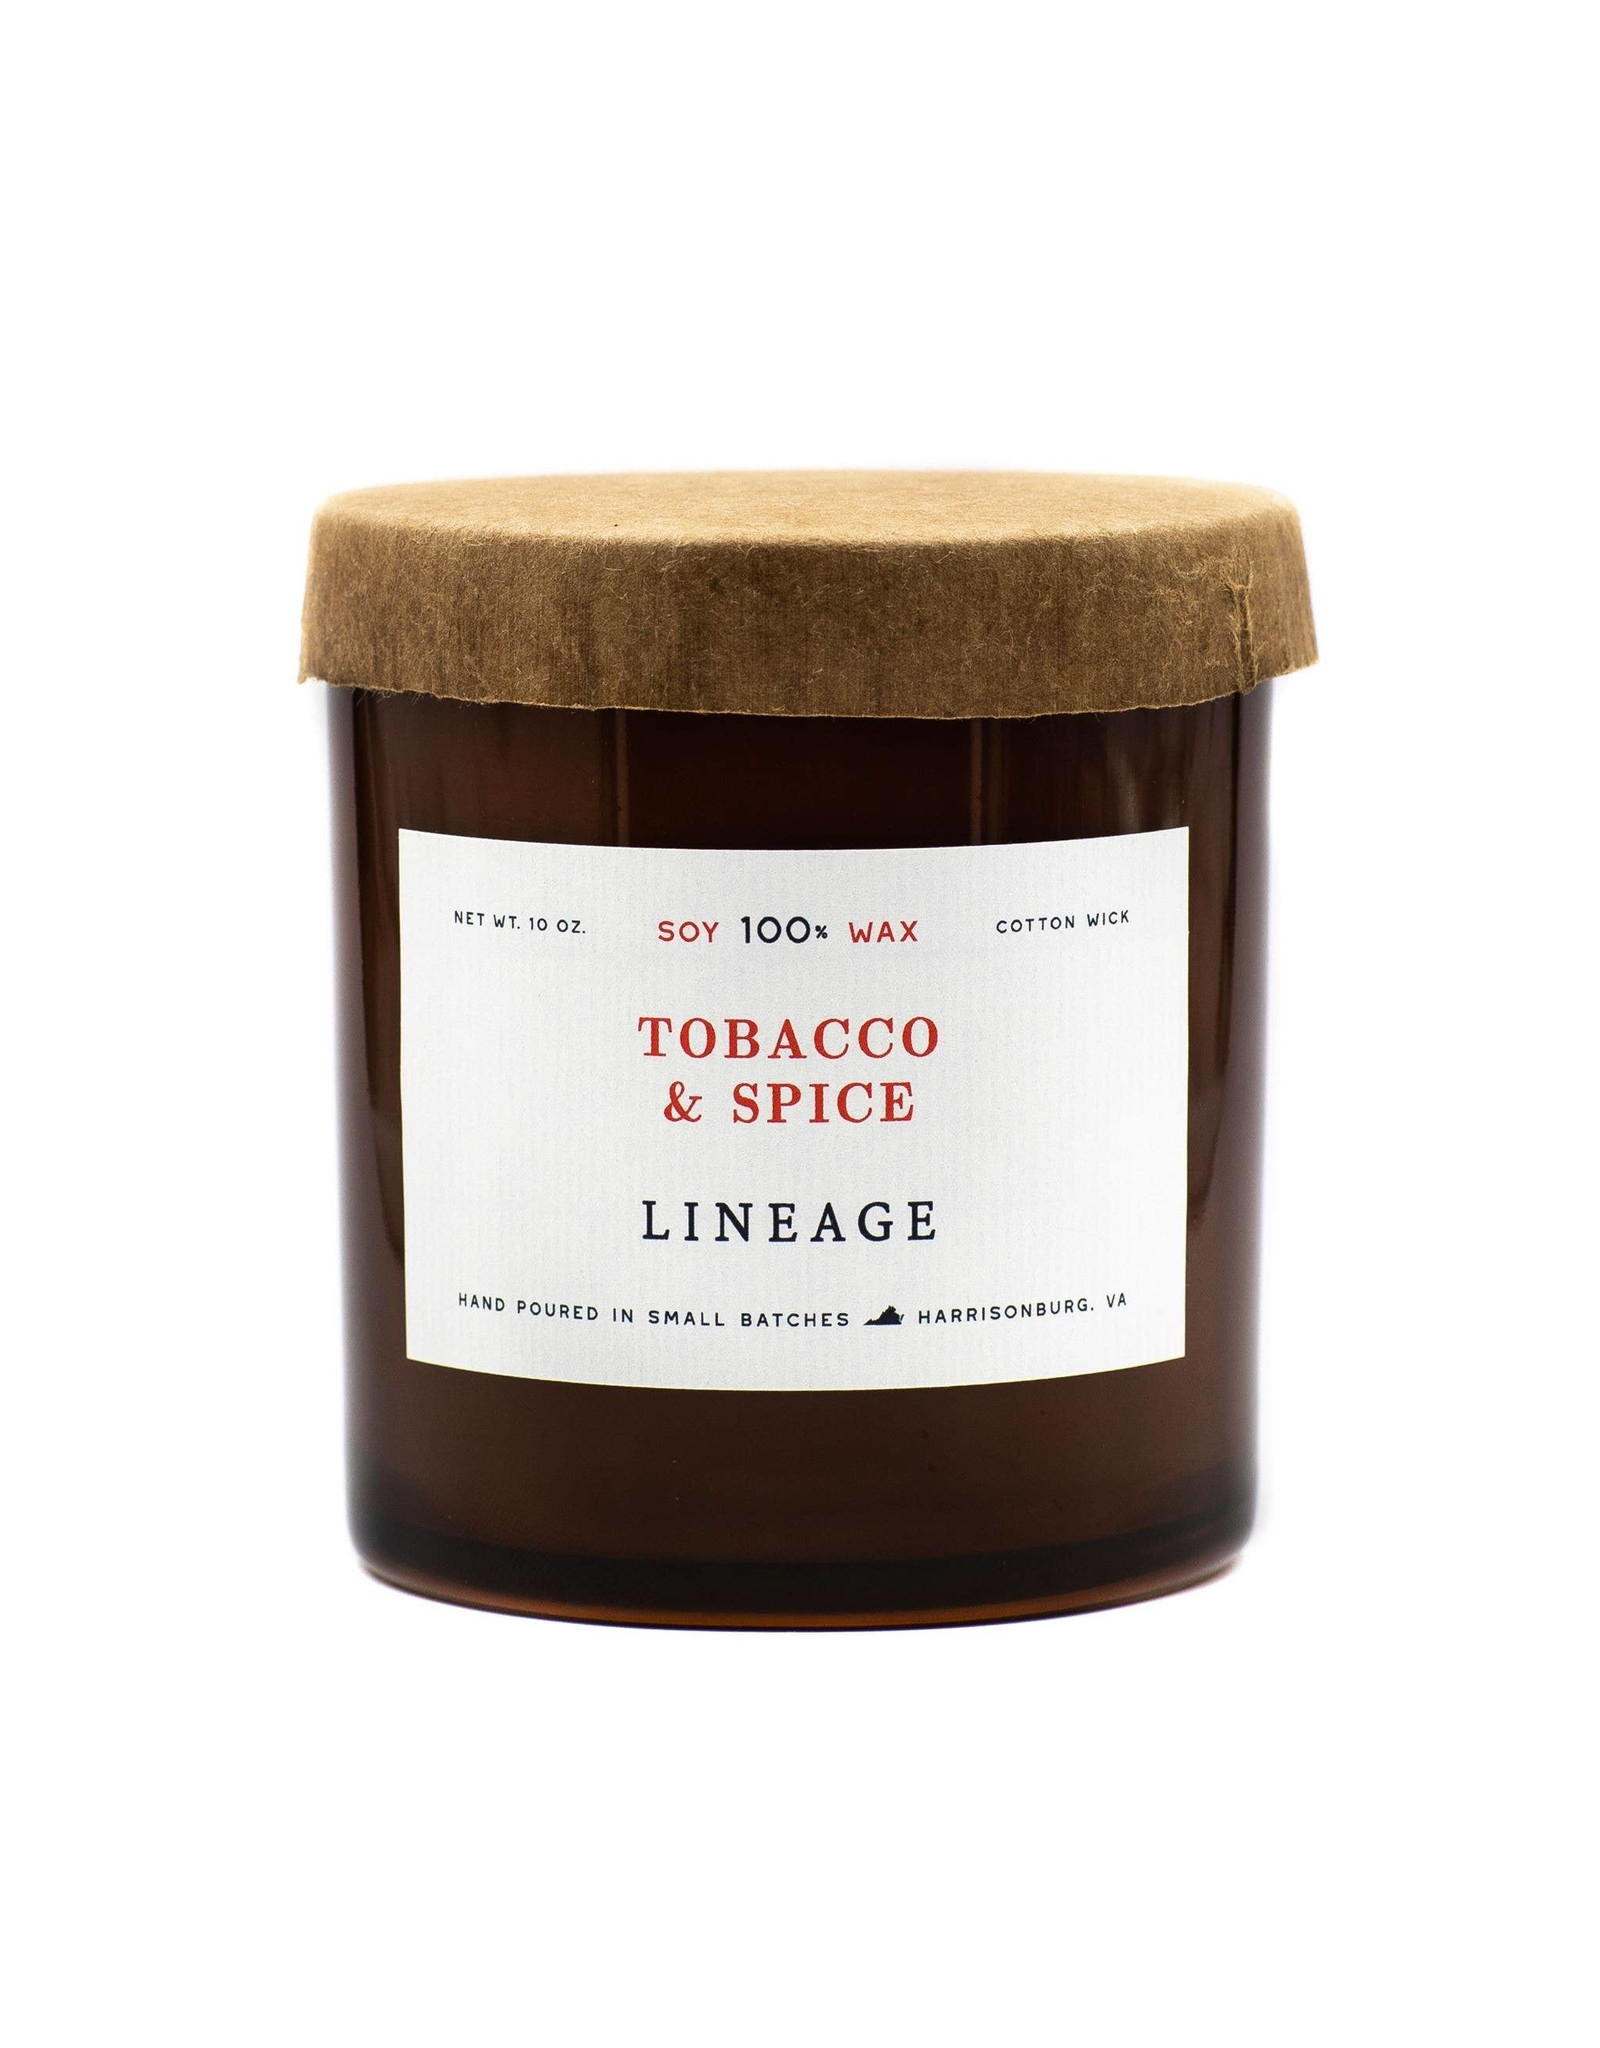 Lineage 10oz Tobacco & Spice Soy Candle